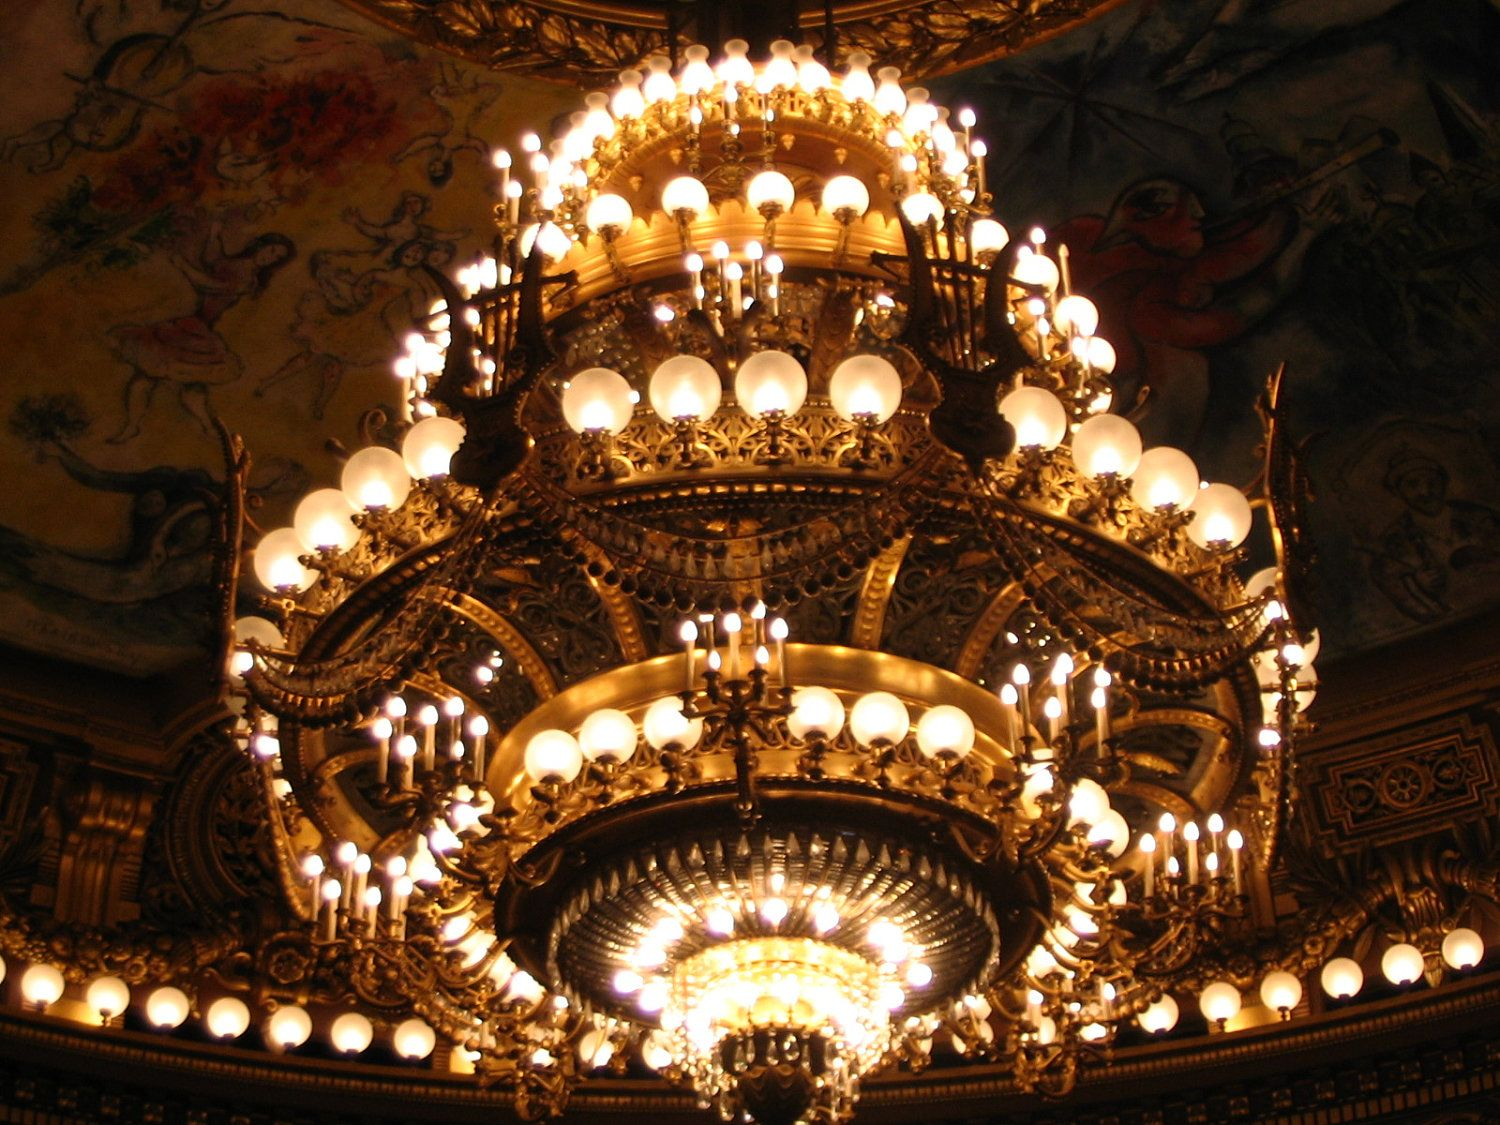 Palais Garnier Chandelier – Chandeliers Design:1000 Images About The Palais Garnier On Pinterest Gold. Chandelier ...,Lighting